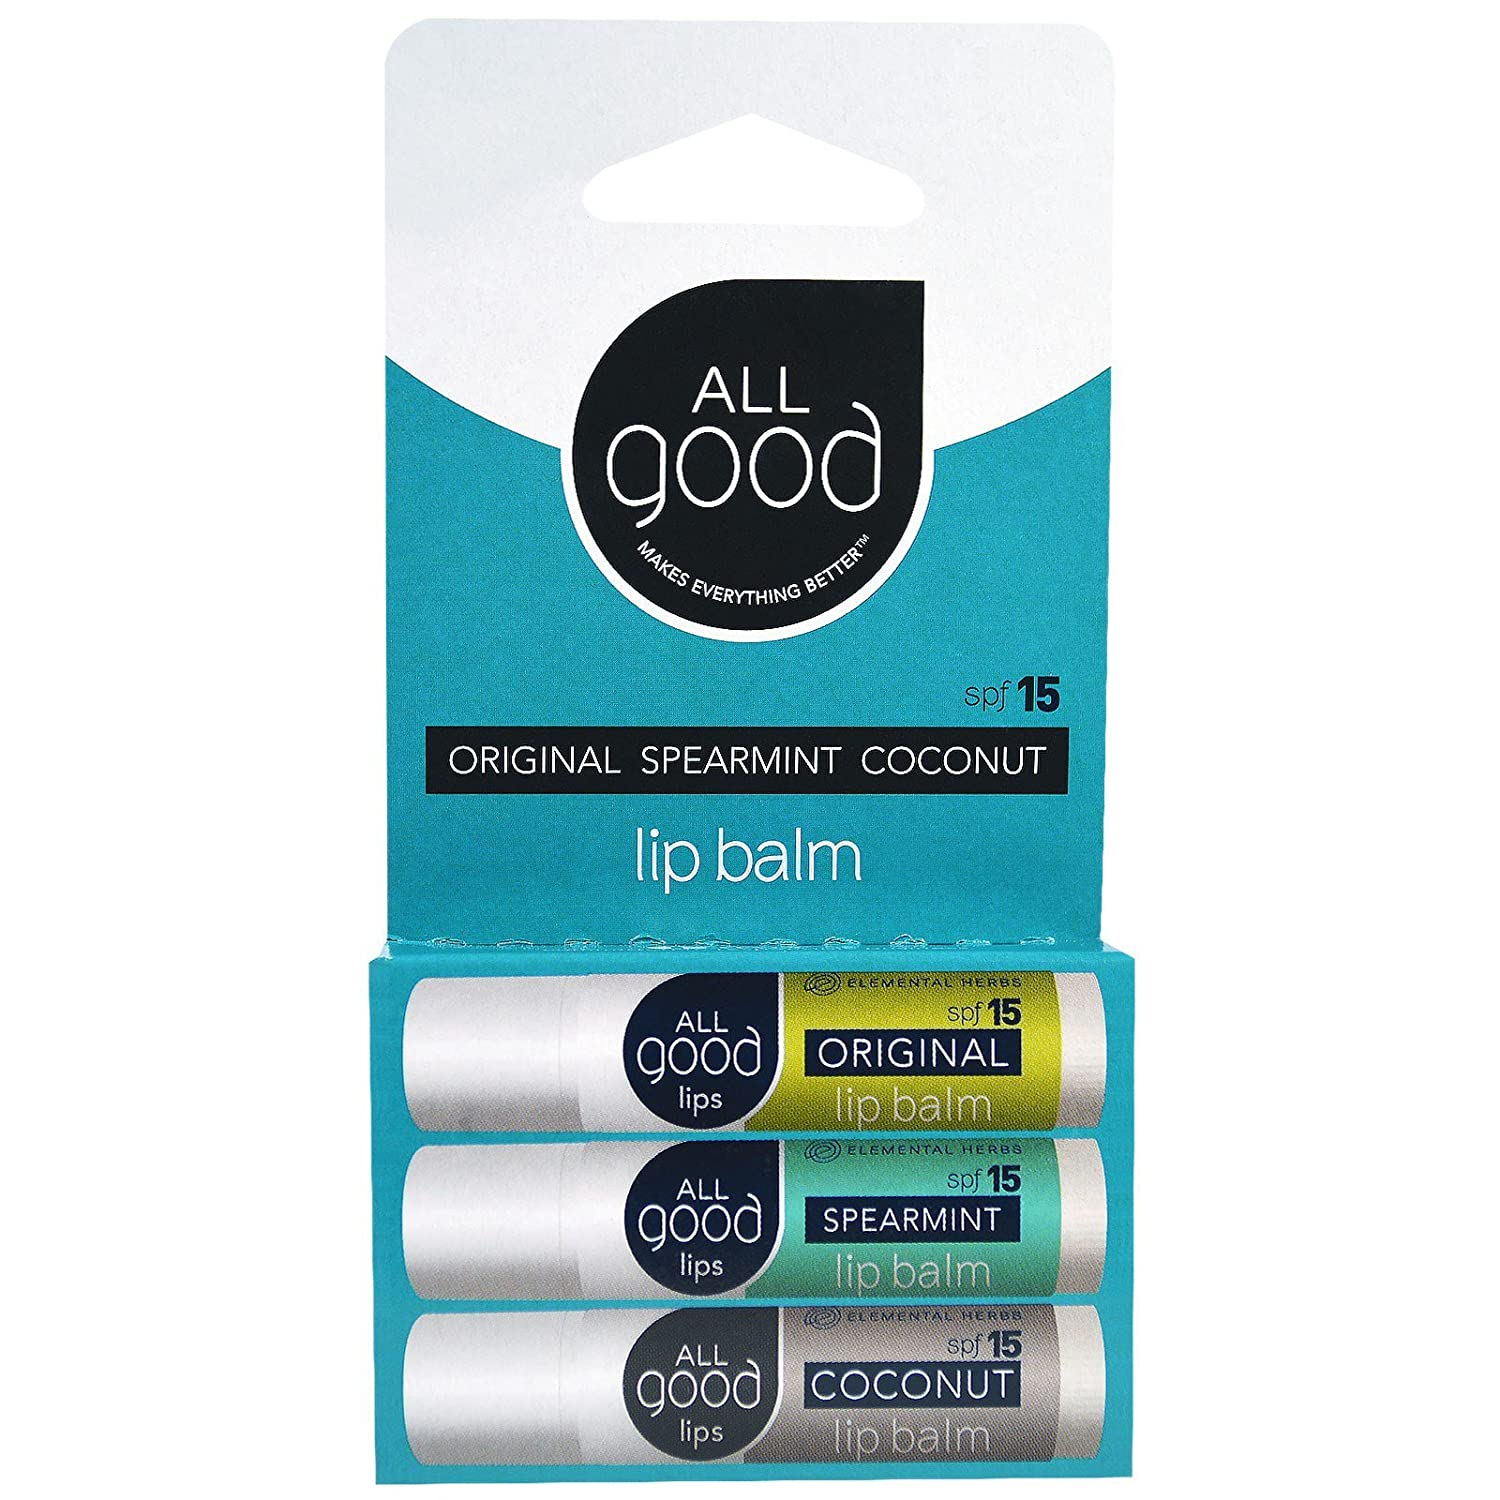 All Good Natural SPF 15 Lip Balm for Soft Smooth Lips - With Calendula, Lavender, Olive Oil, Beeswax, Vitamin E | Zinc Oxide for Safe Sun Protection (3-Pack) (Original/Spearmint/Coconut)